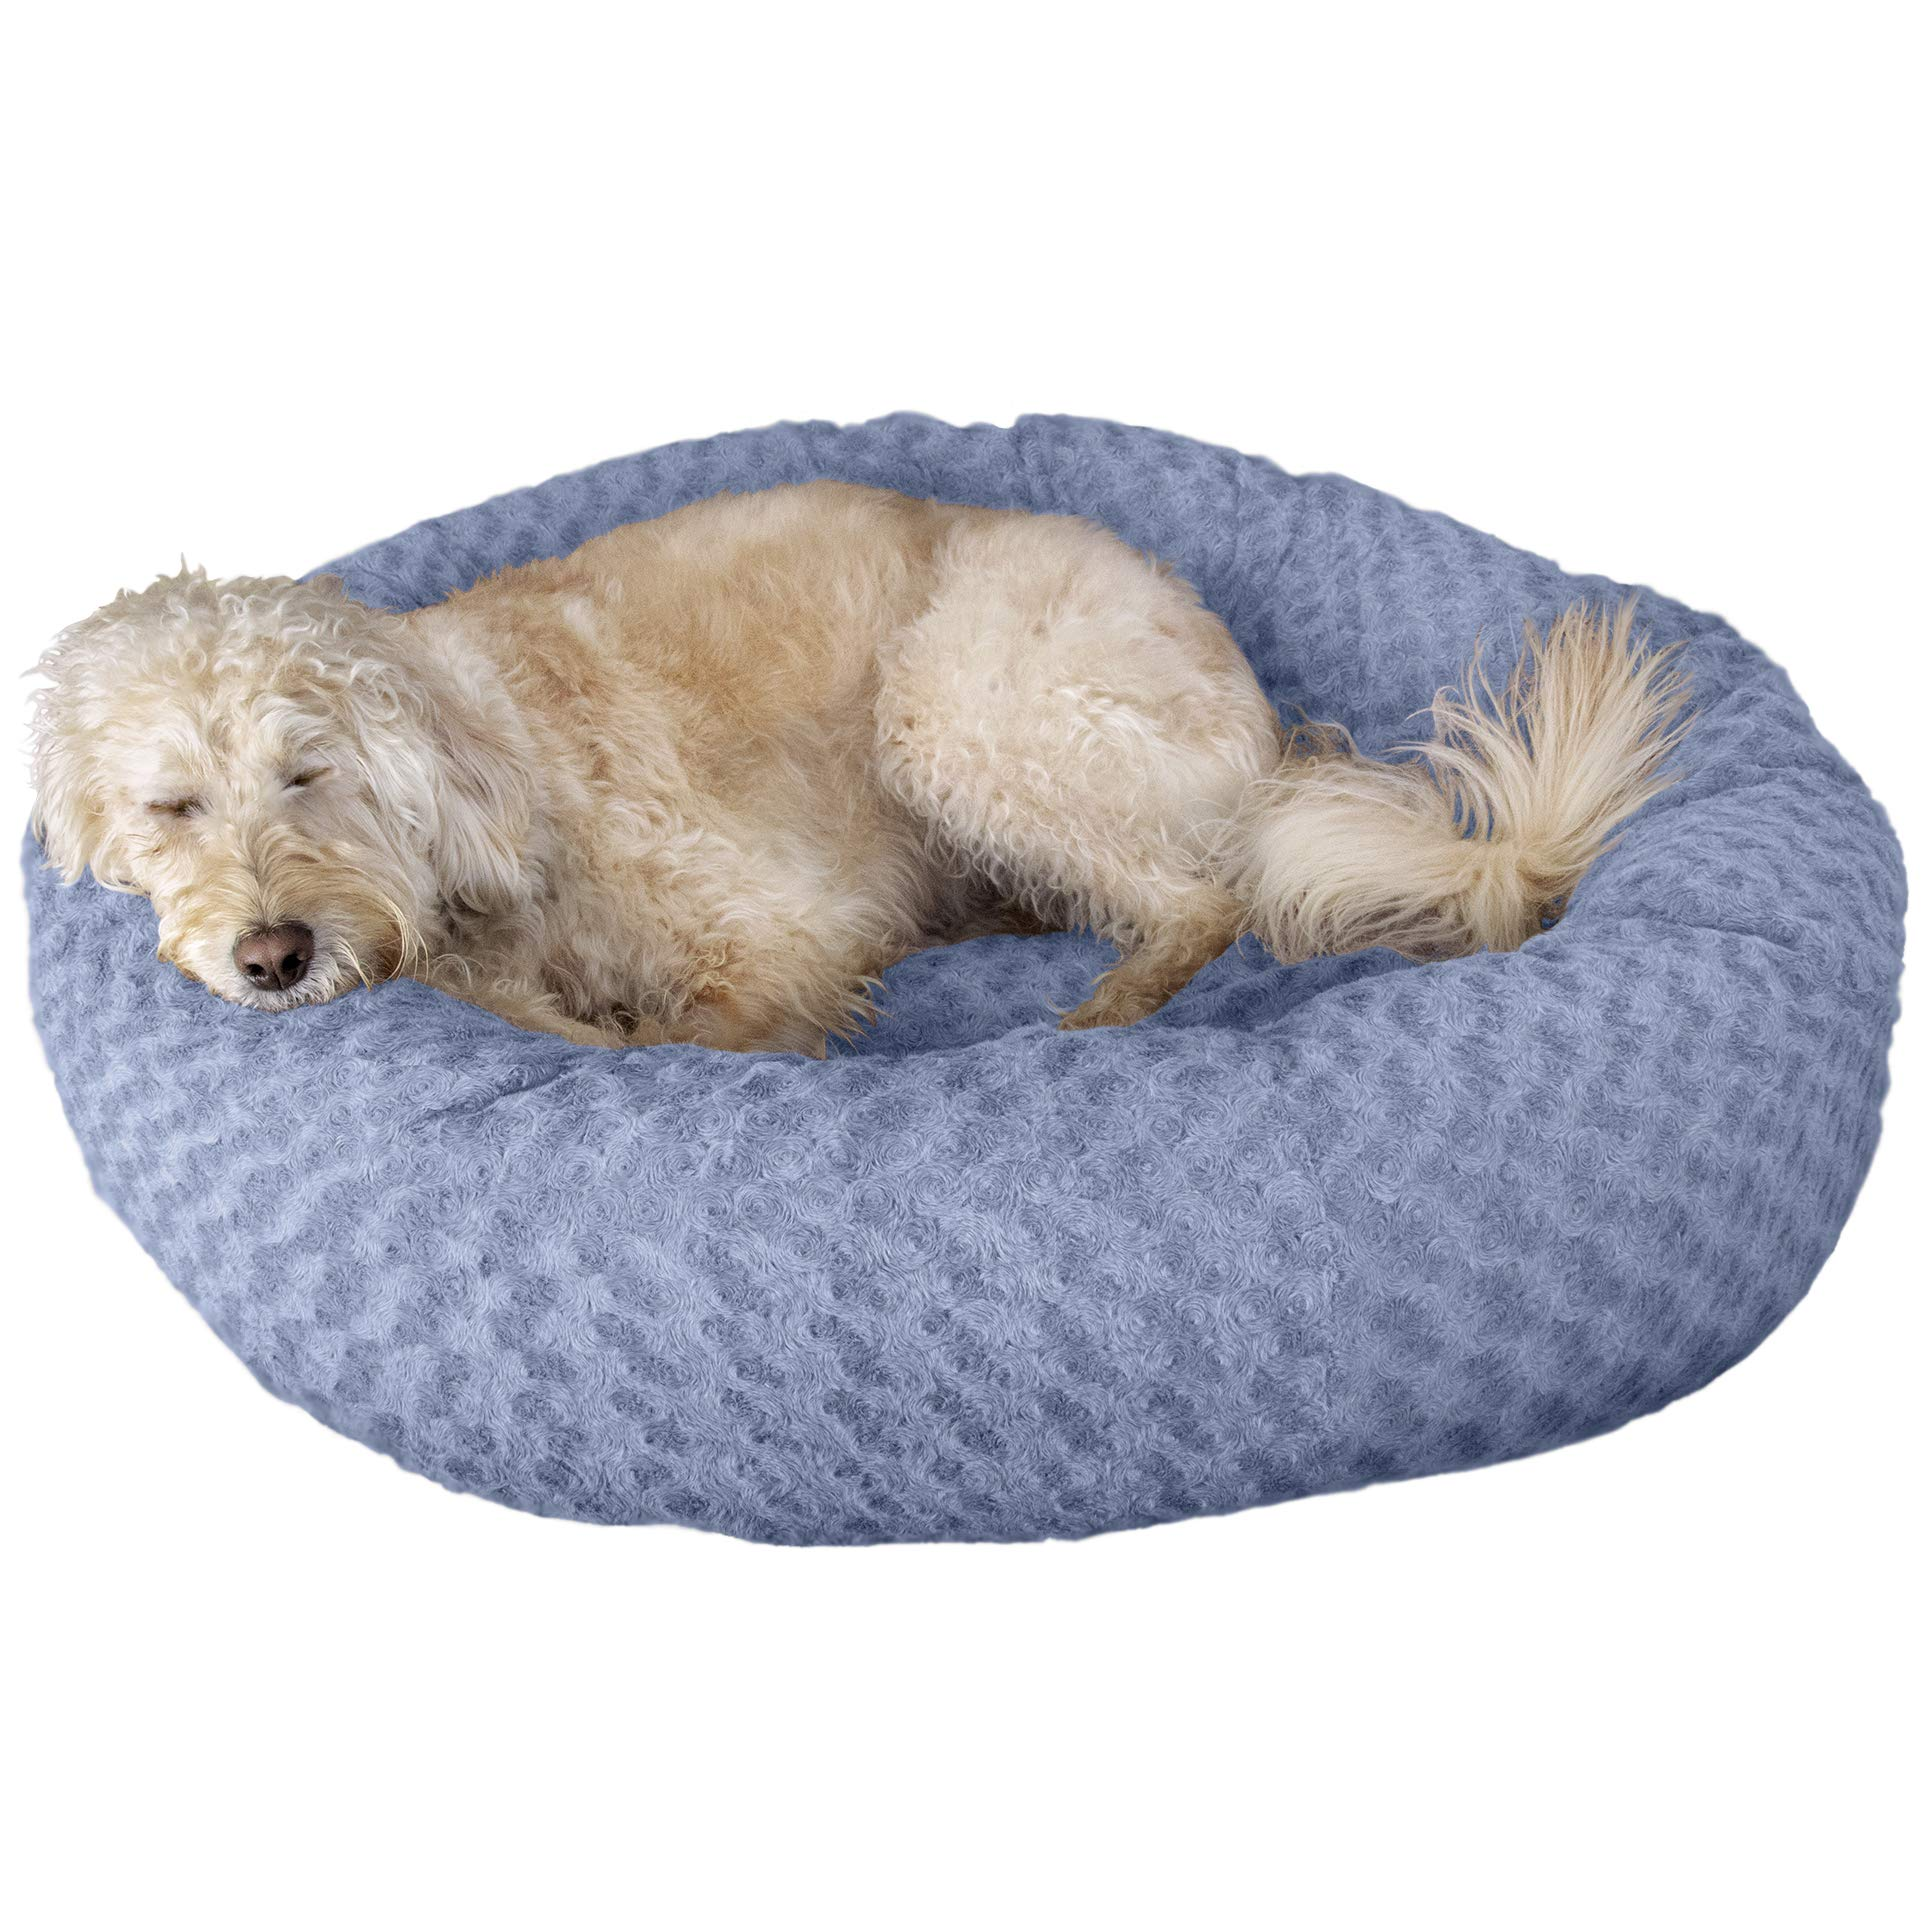 FurHaven Pet Donut Bed | Deep Dish Curly Fur Donut Pet Bed for Dogs & Cats, Fresh Blueberry, Large